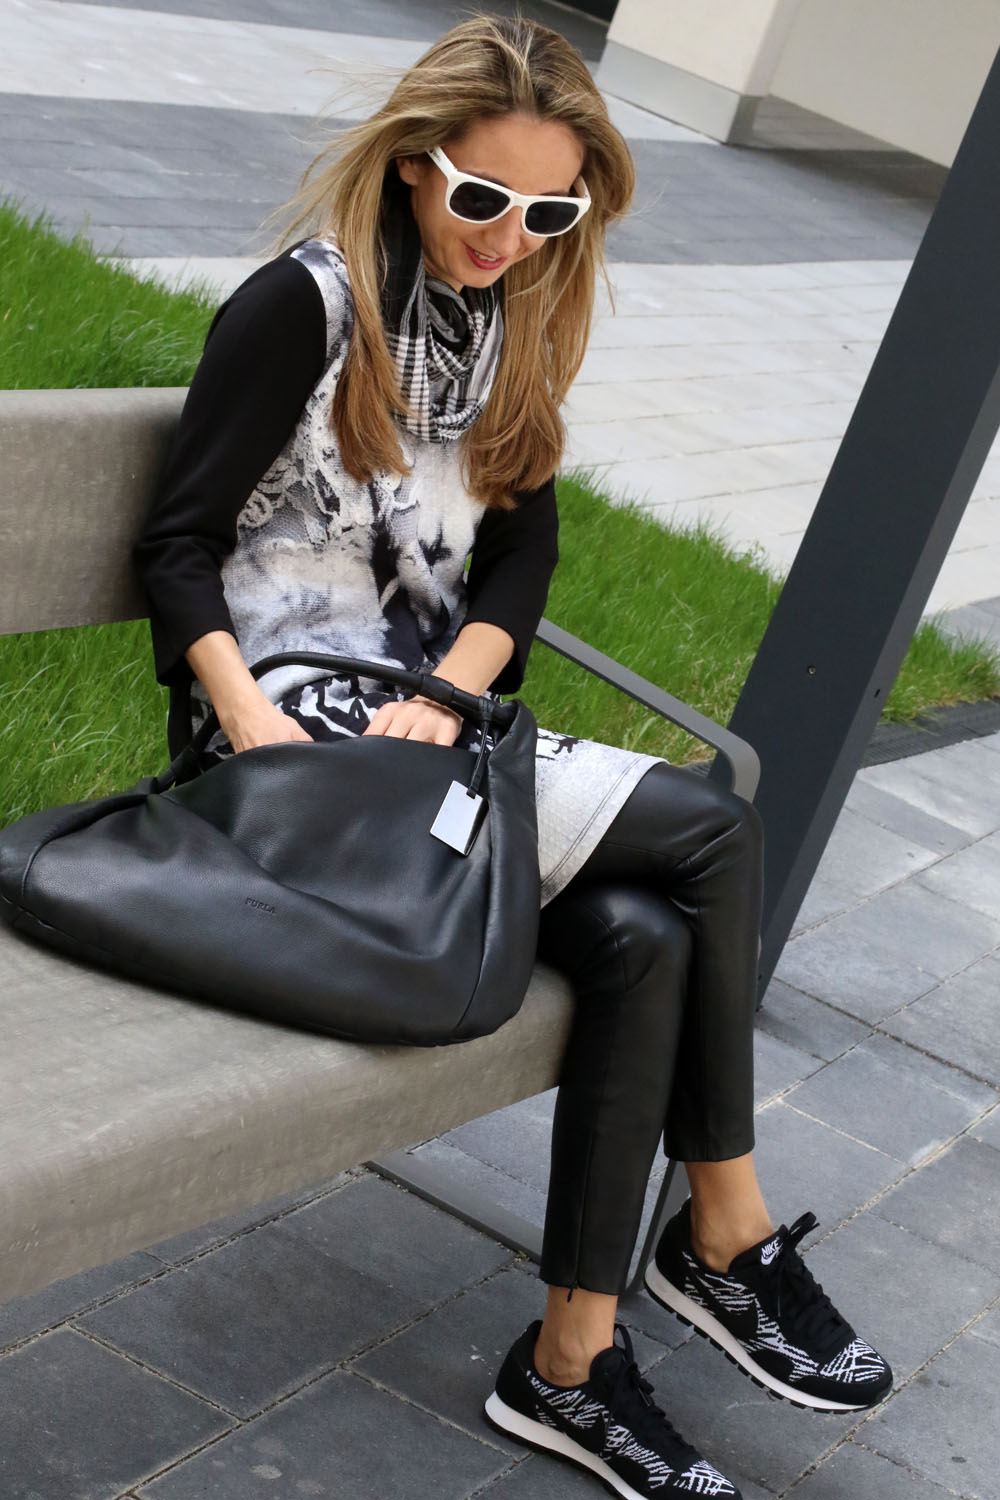 colourclub-fashionblog-outfit-dress-over-pants-black-and-white-nike-sneakers2